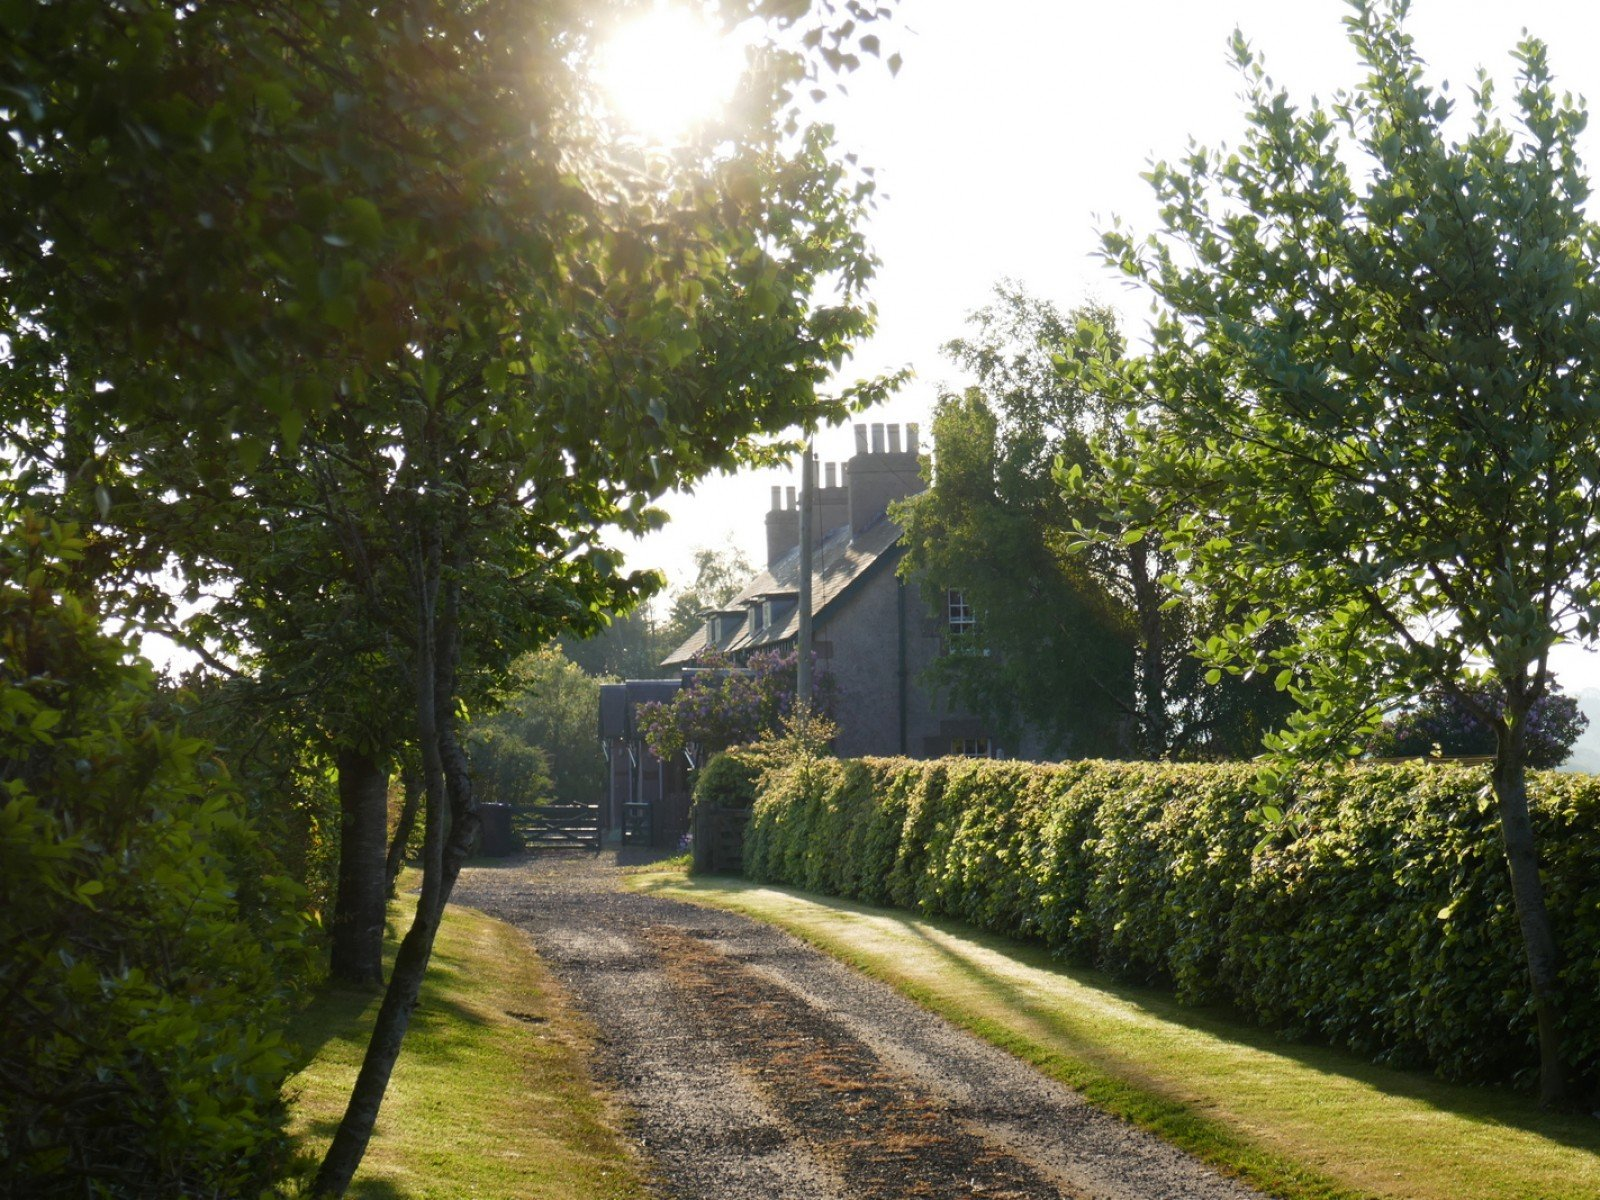 Hendersyde Holiday Cottages on their own lane